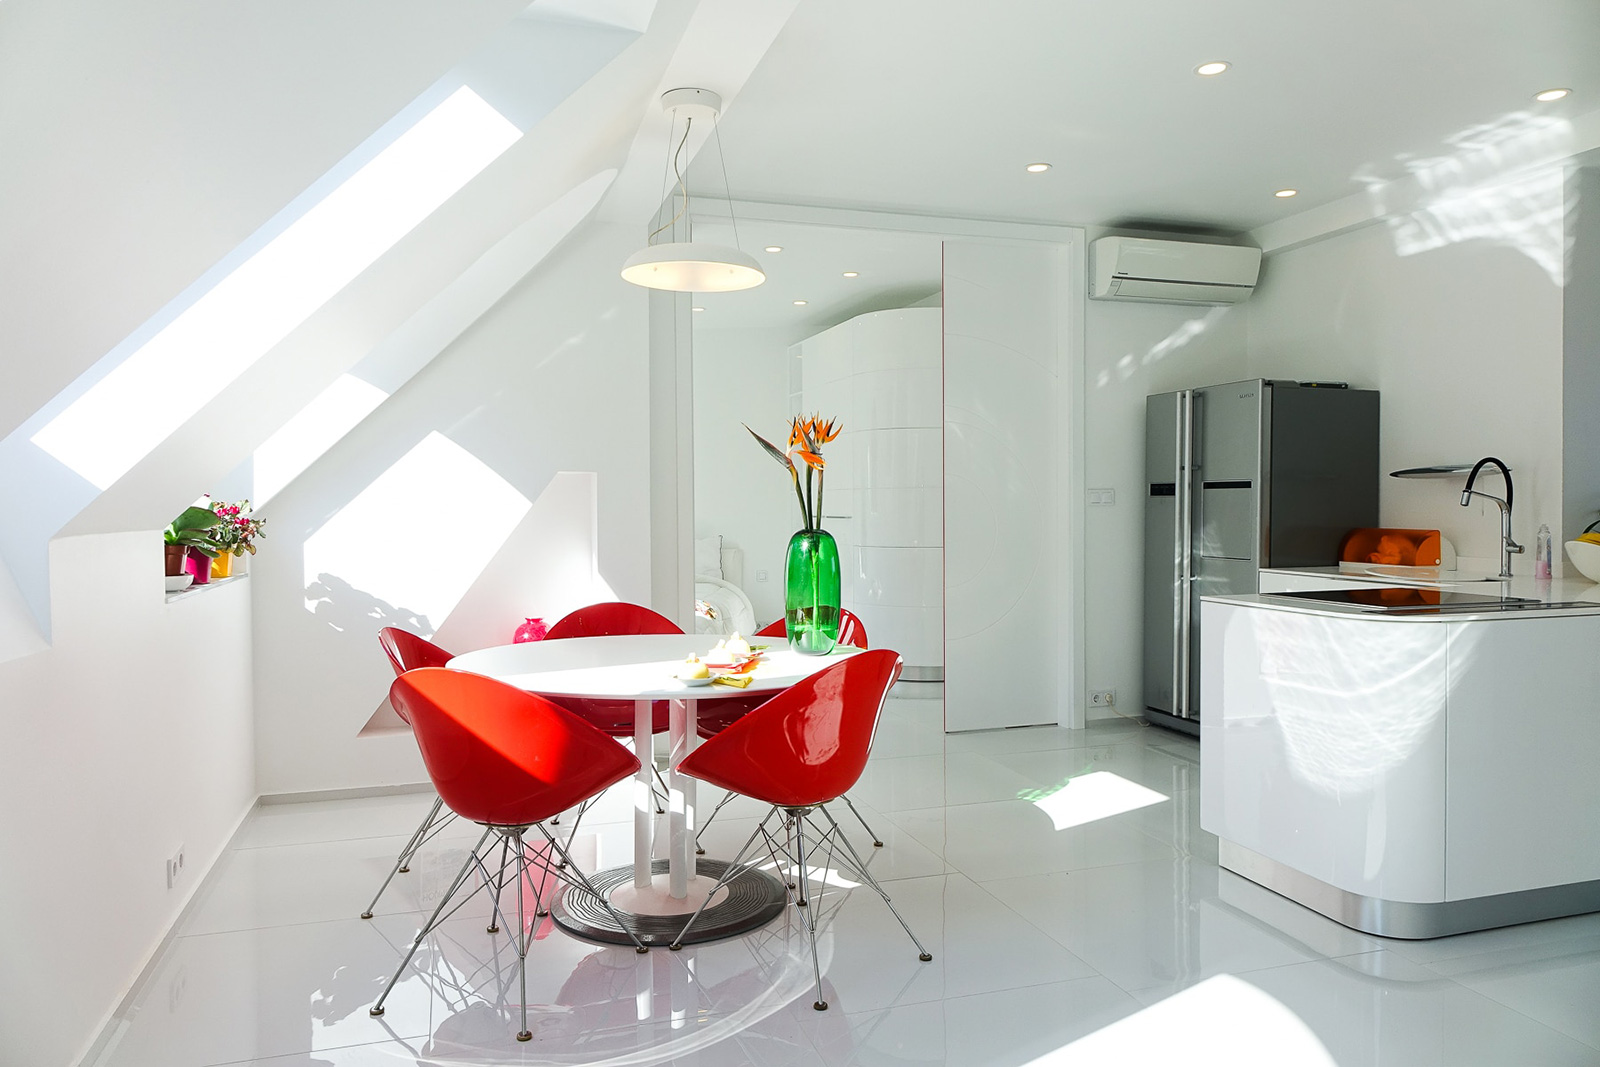 White interior with red chairs